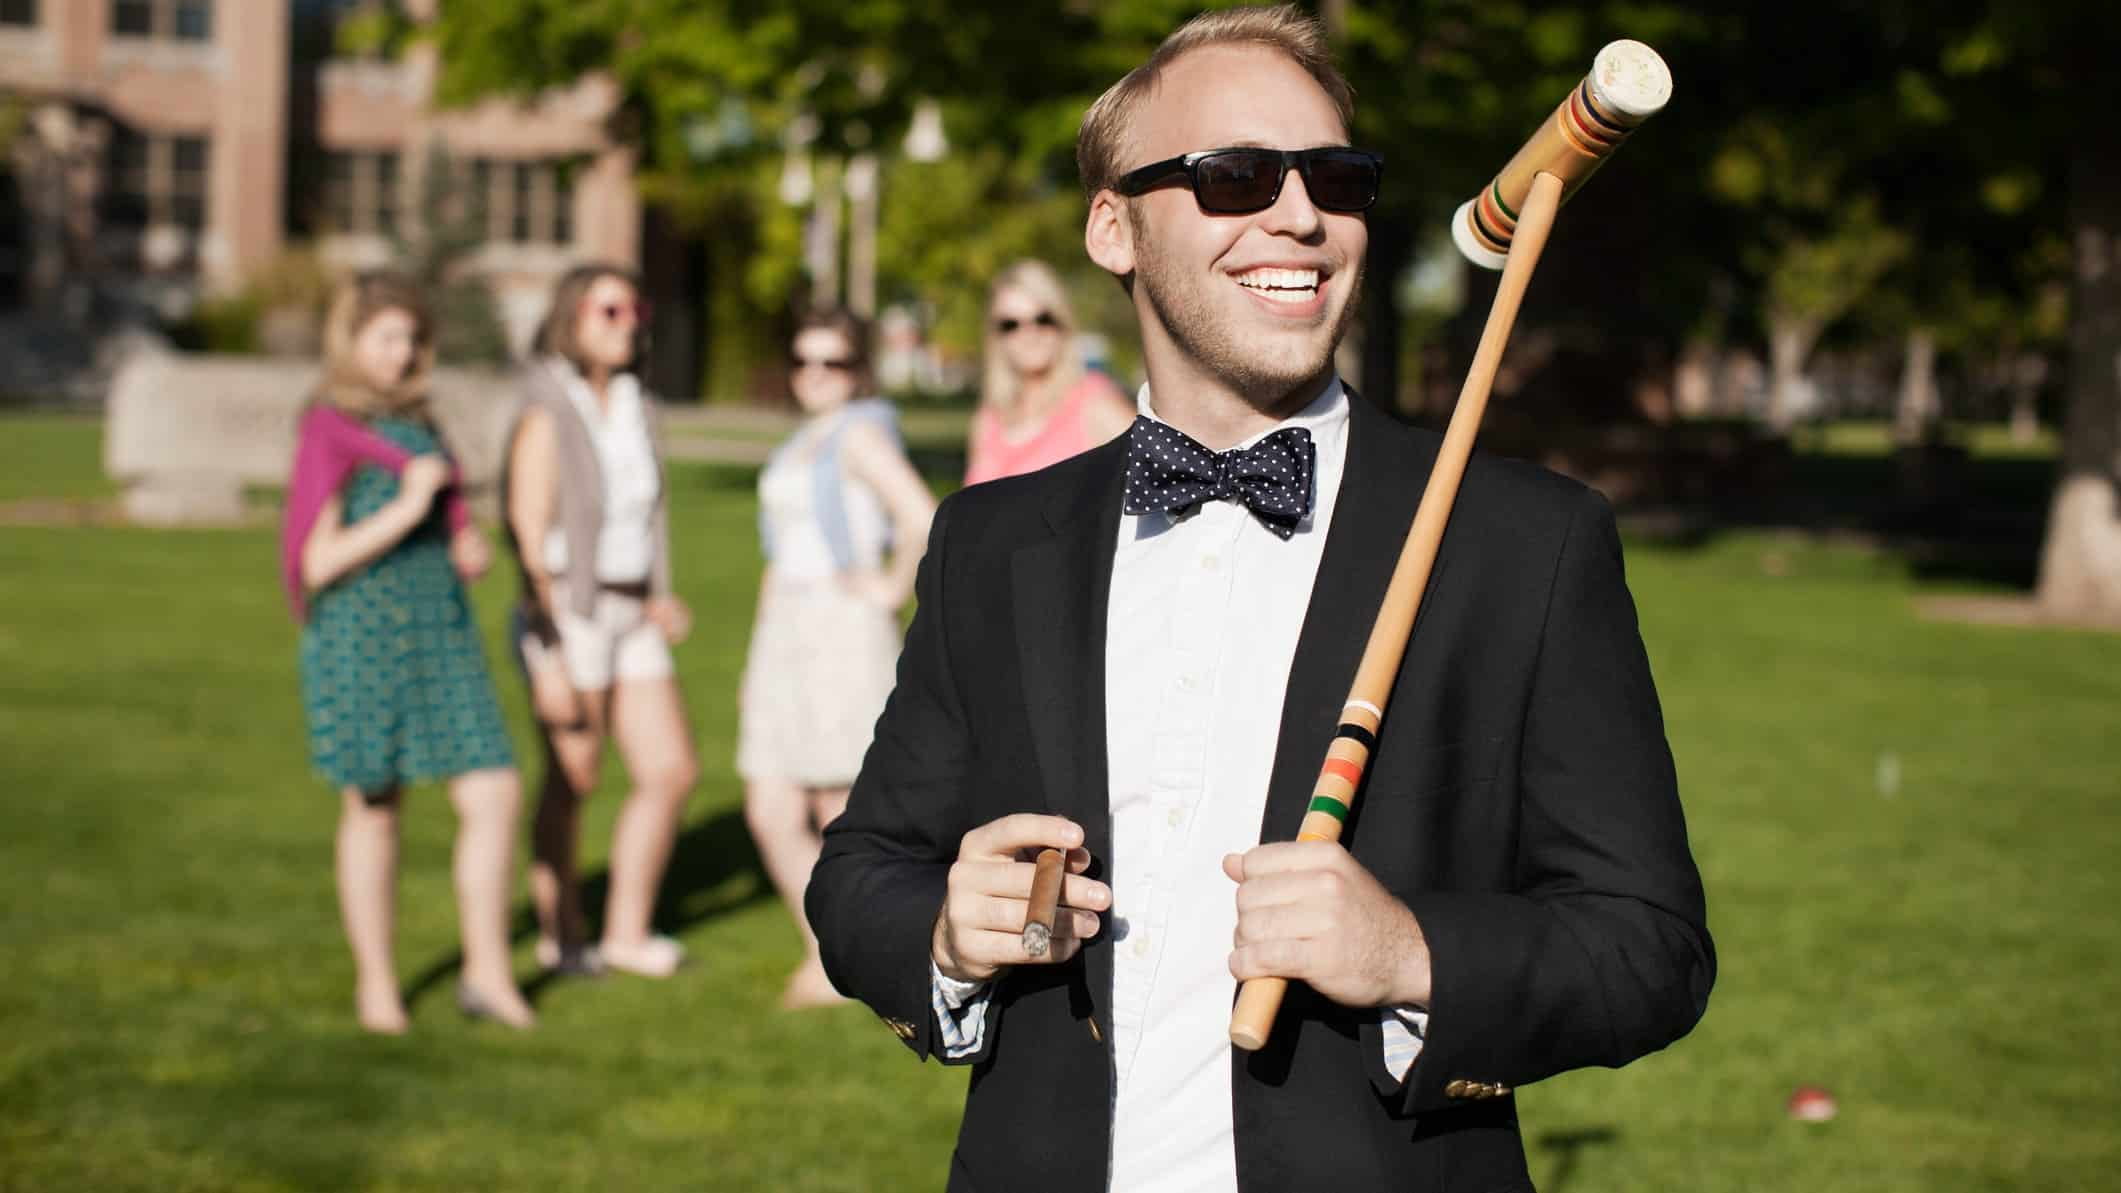 a man wearing a dinner suit holds a cigar and a croquet mallet on a rolling green lawn with a group of women and a mansion in the background.